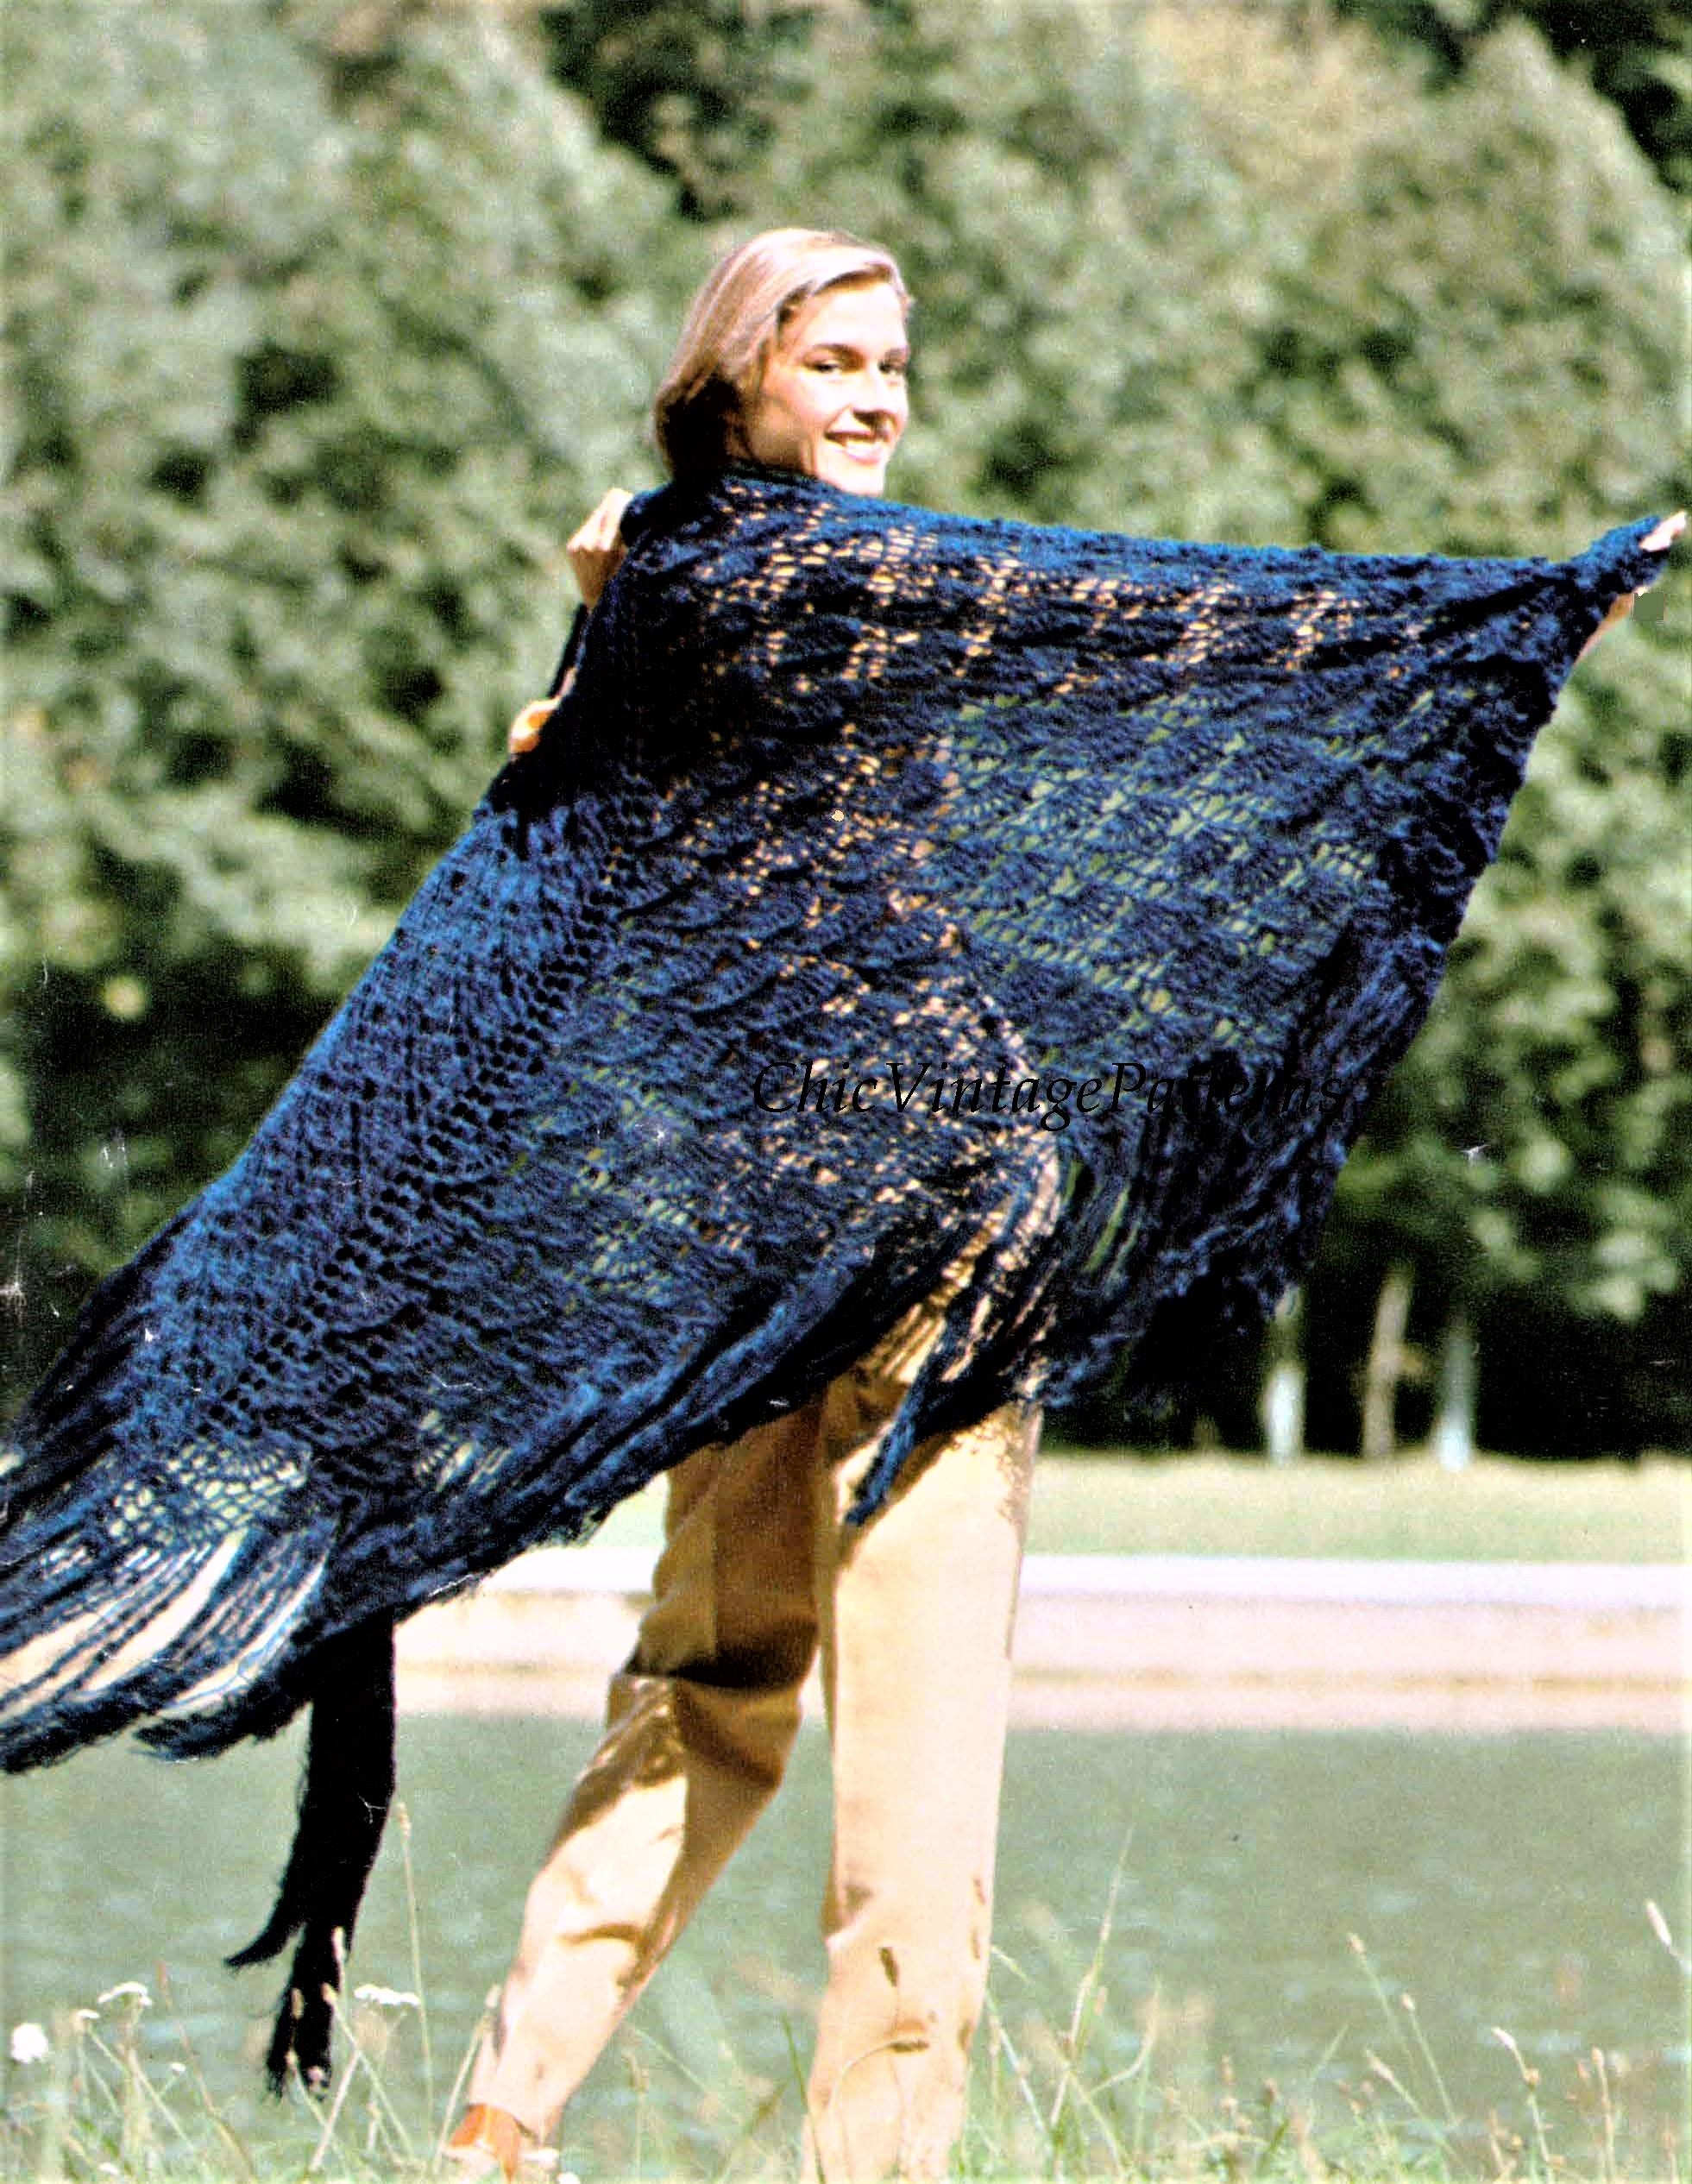 Crochet Lacy Shawl Pattern, Crochet Shell Stitch Triangular Wrap, Instant Download